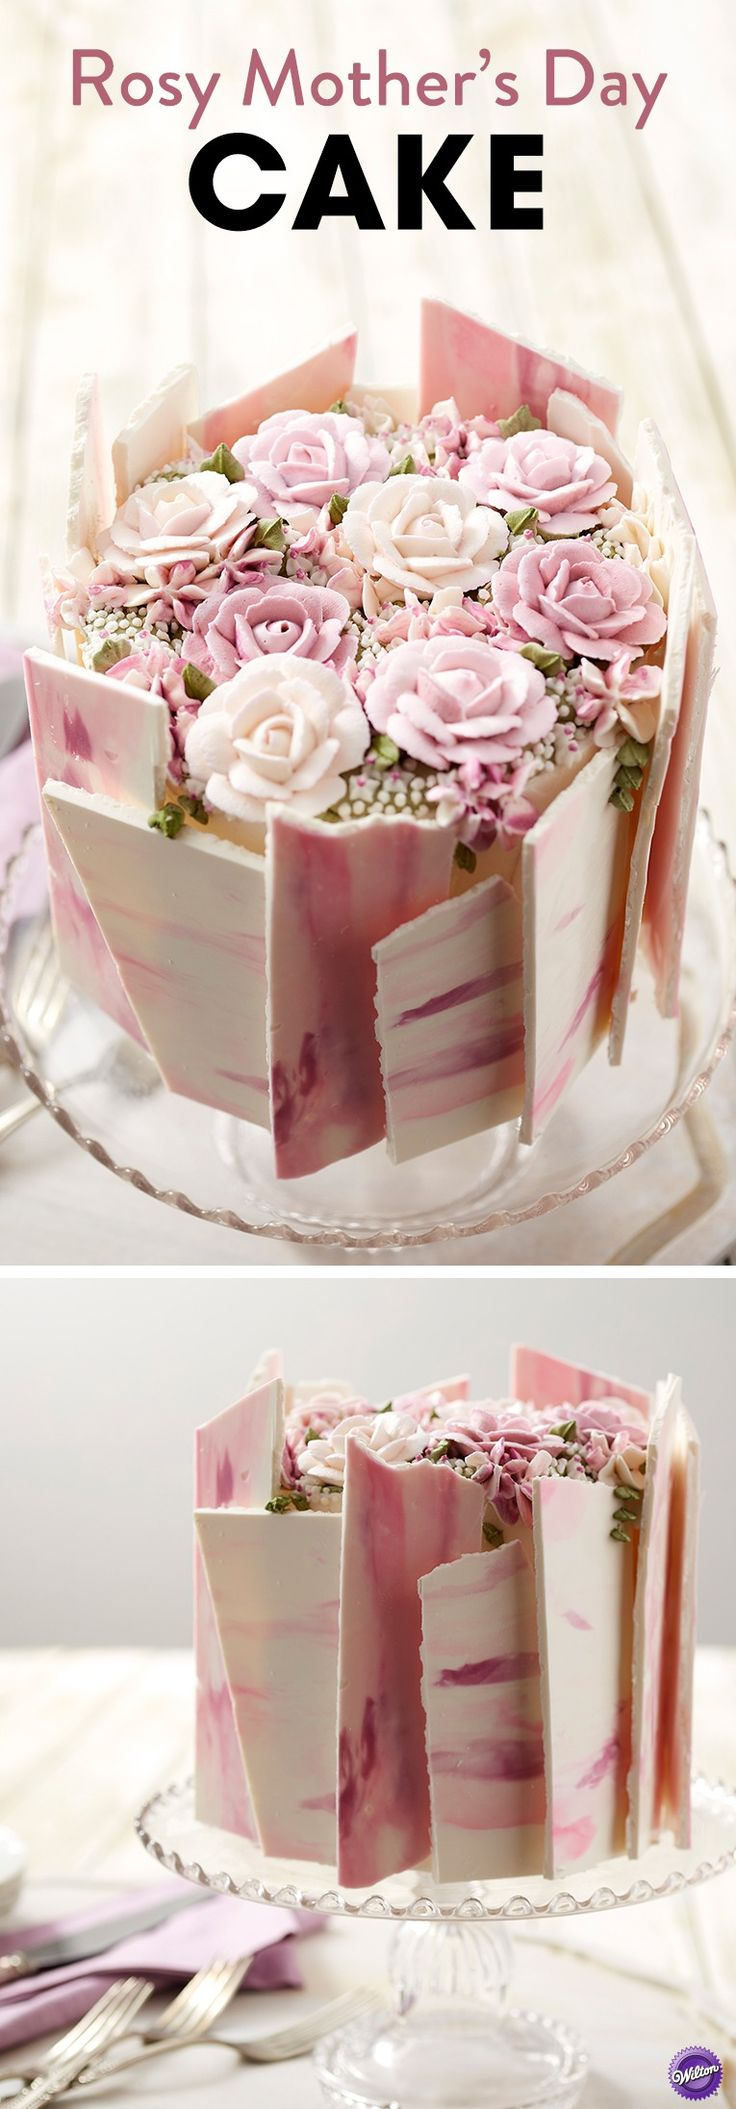 """Nothing says """"I love you"""" like a homemade cake, and what better way to show mom what she means to you than with this Rosy Mother's Day Cake? Topped with beautiful buttercream flowers and decorated with pink and purple candy shards, this lovely Mother's Day dessert is bound to be one edible arrangement mom will love! Layer icing colors in your decorating bags to make your roses look like they're actually blooming, and get ready to wow with this Rosy Mother's Day Cake."""